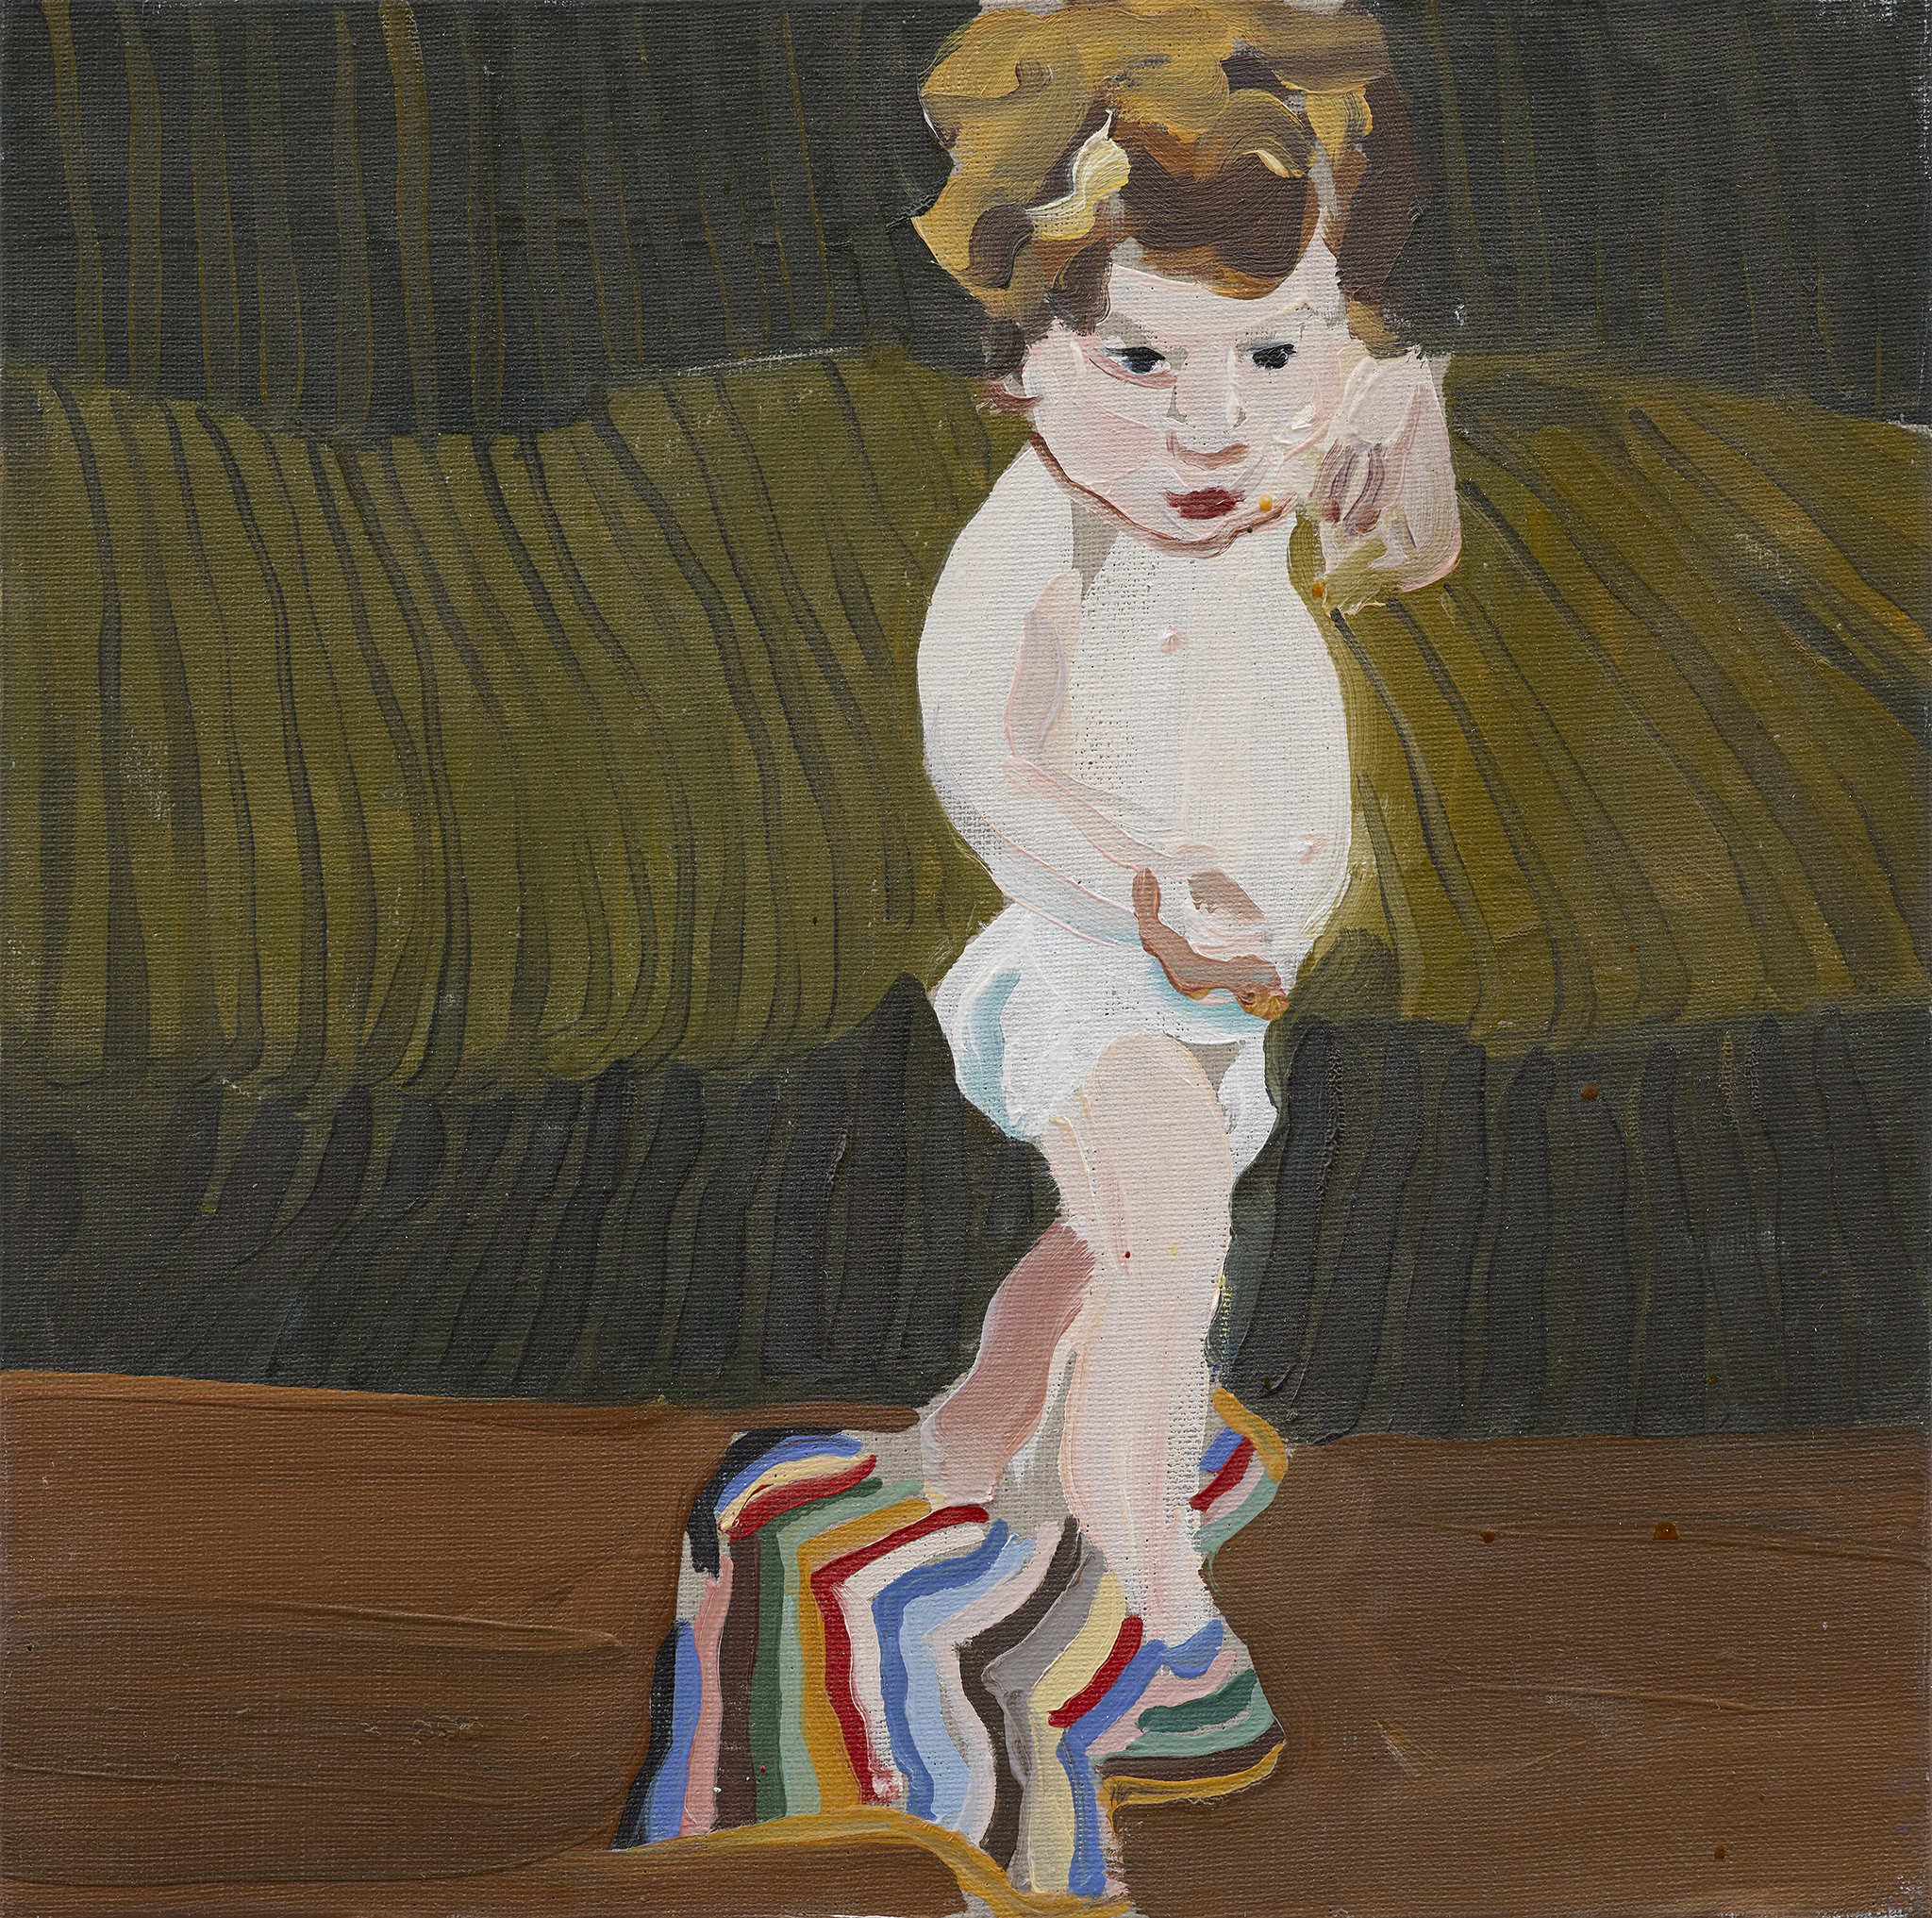 Esme with a Striped Blanket, 2008